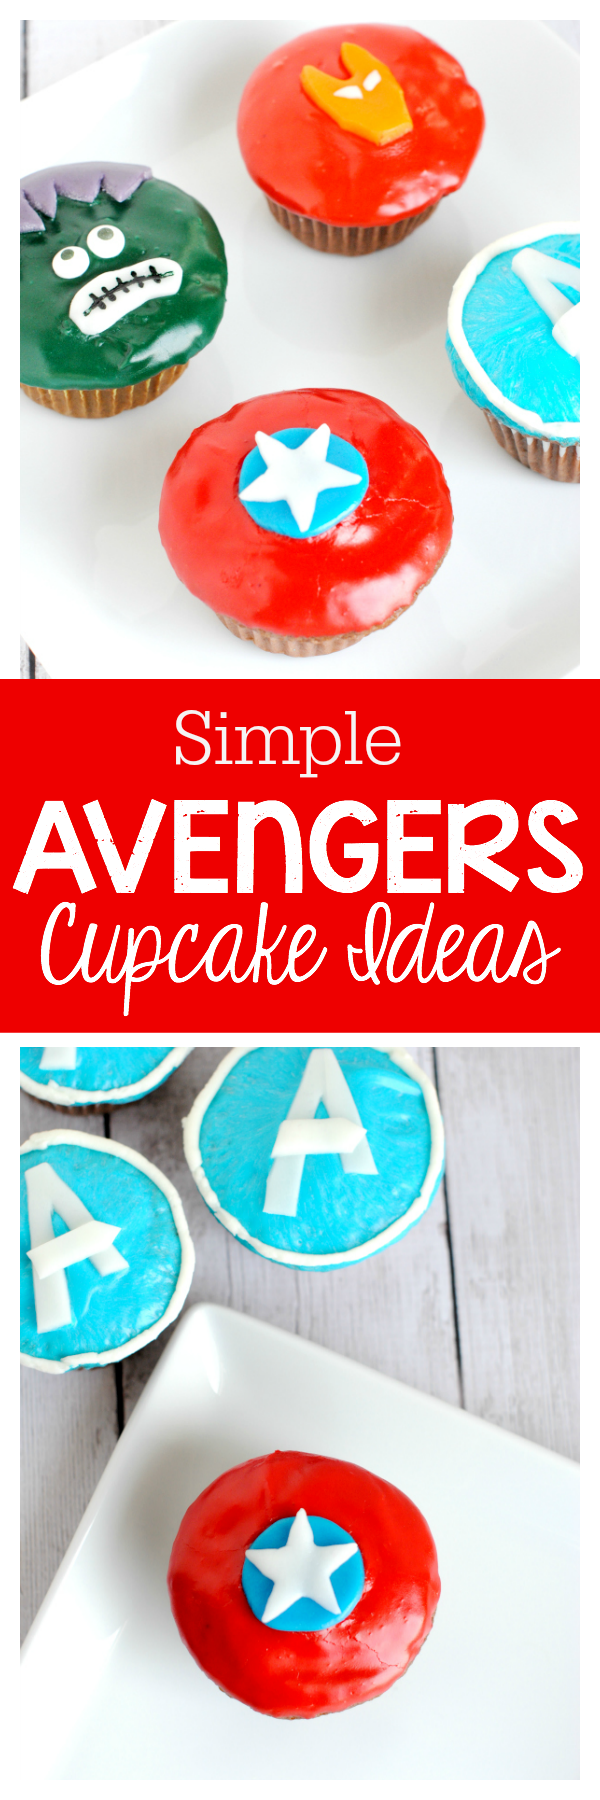 Simple (easy to make!) Avengers Cupcake Ideas